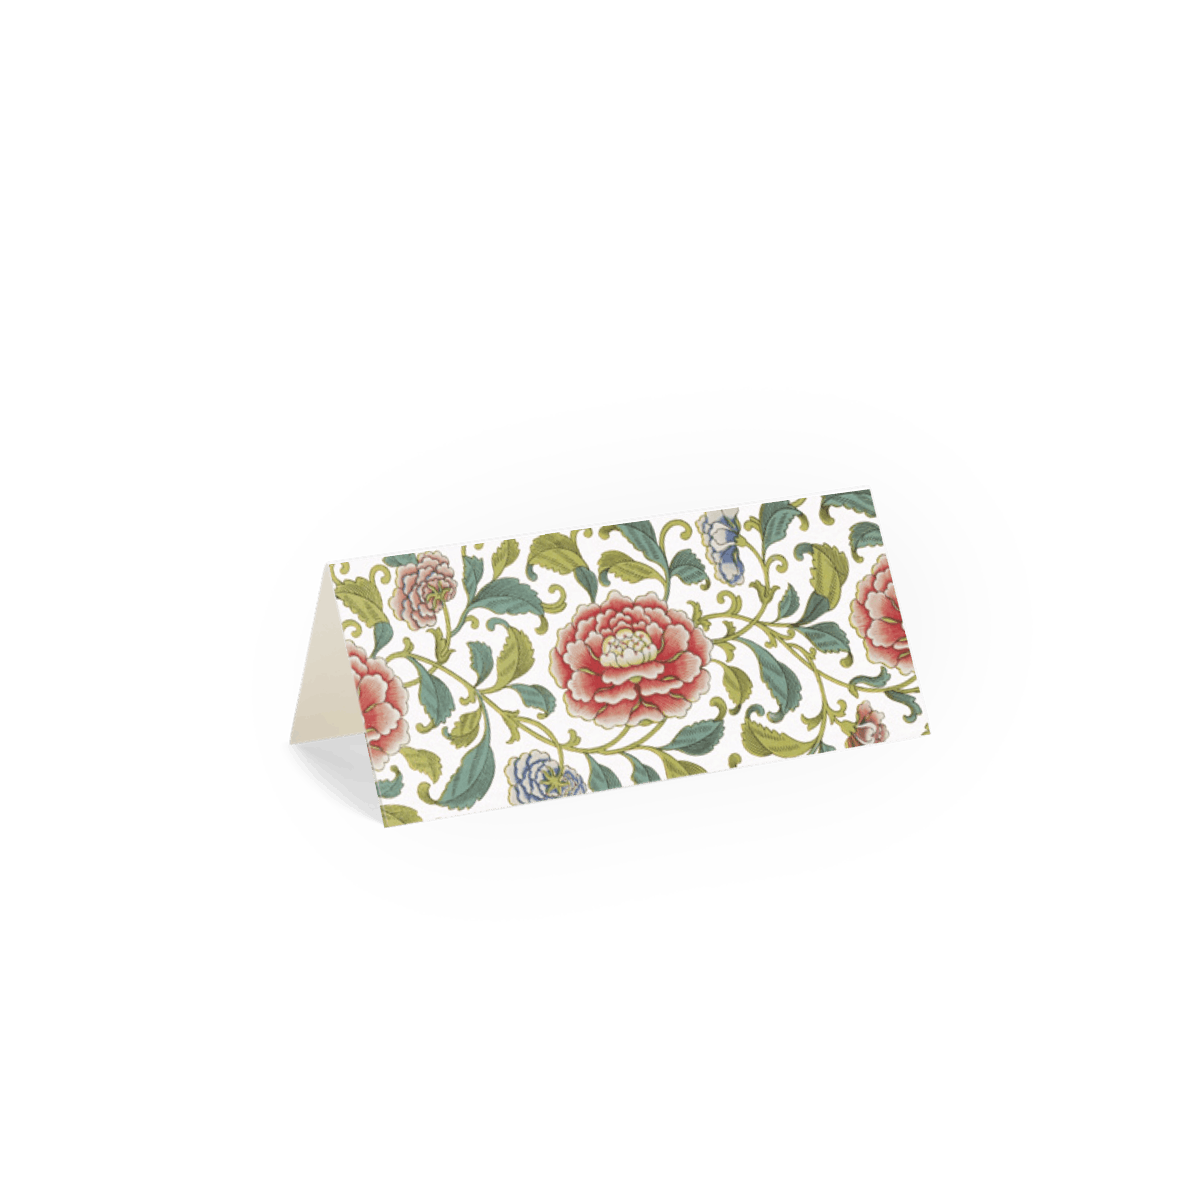 Https%3a%2f%2fwww.papier.com%2fproduct image%2f82597%2f15%2fornate florals 20002 arriere 1562160155.png?ixlib=rb 1.1